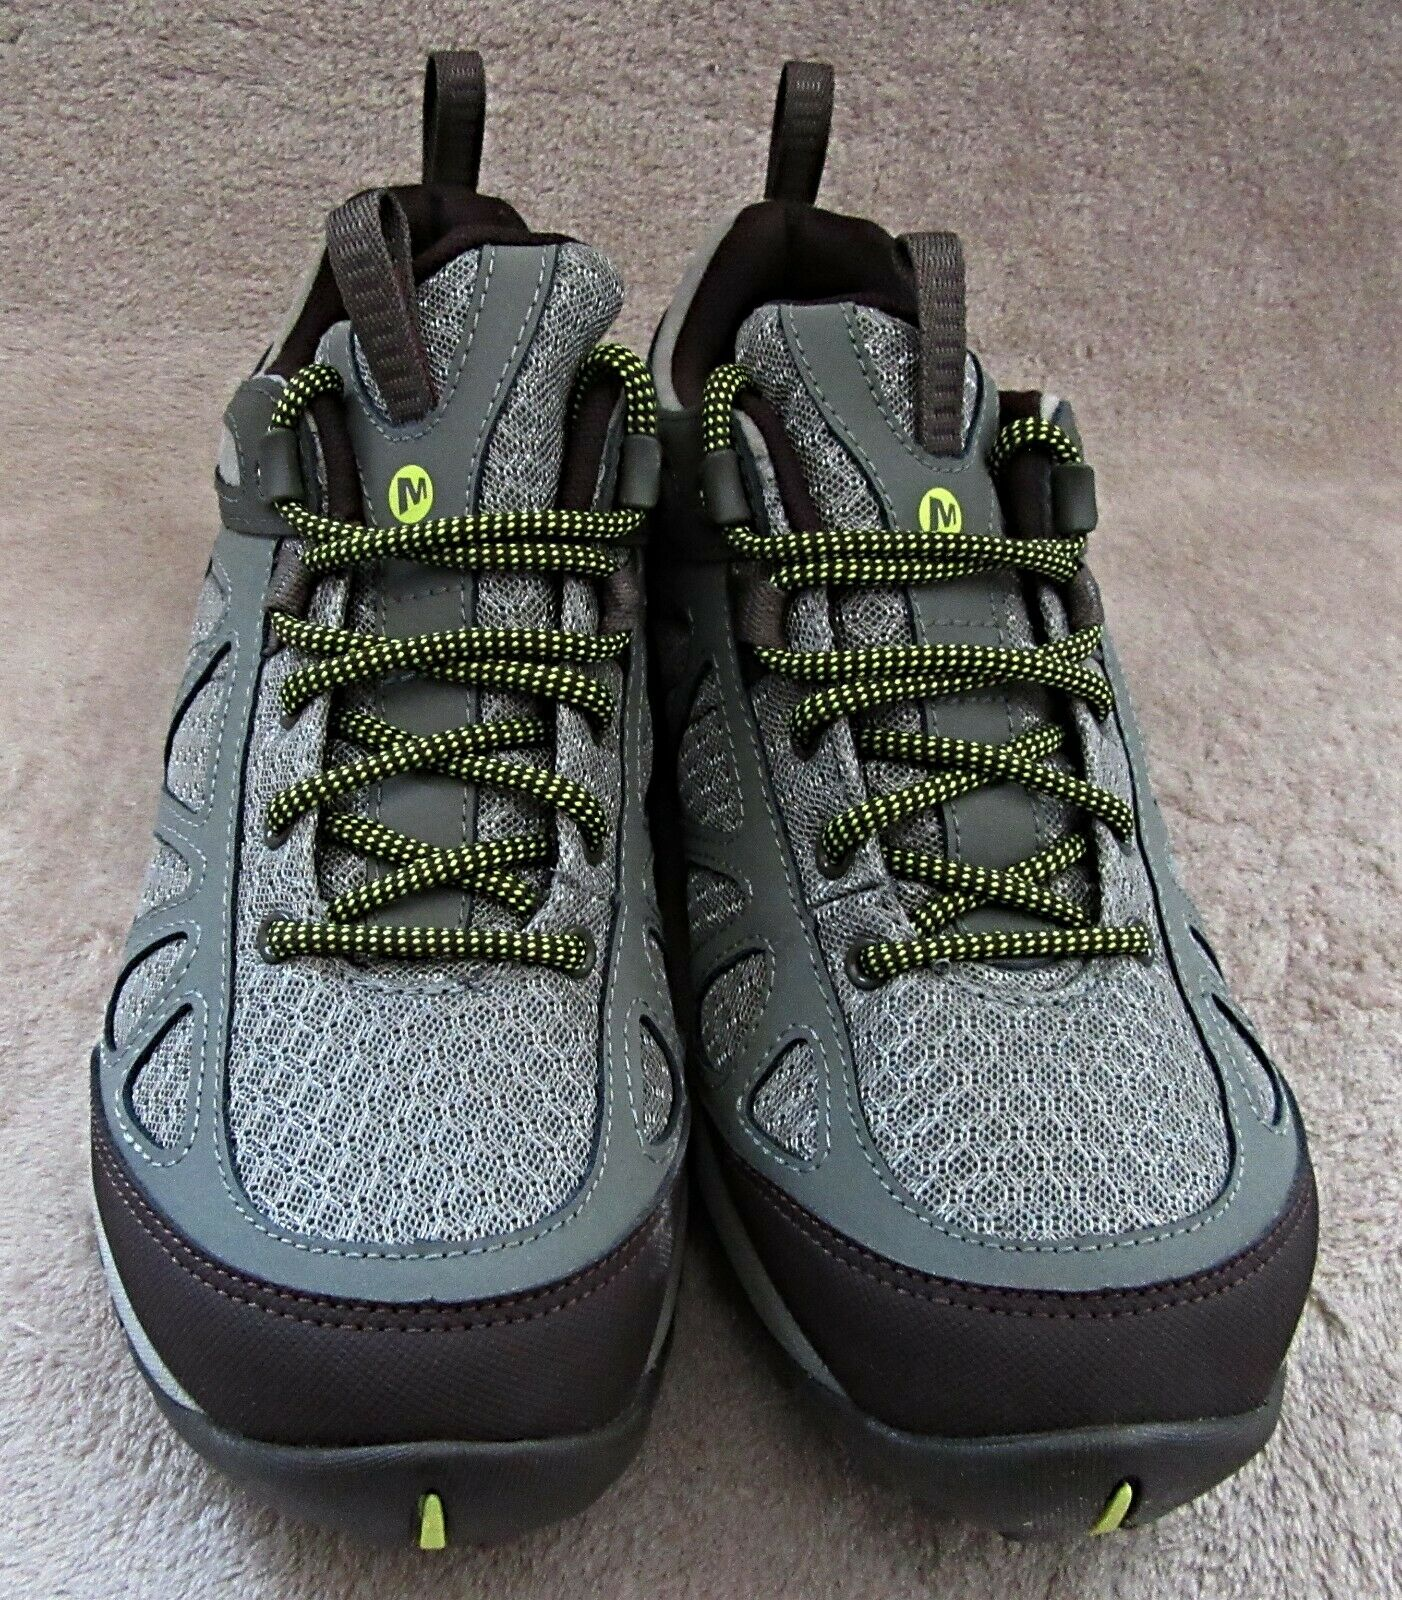 MERRELL J37464 Womens Siren Sport Q2 Dusty Olive Leather Leather Leather shoes US 9 M EUR 40 NWB 1b191c